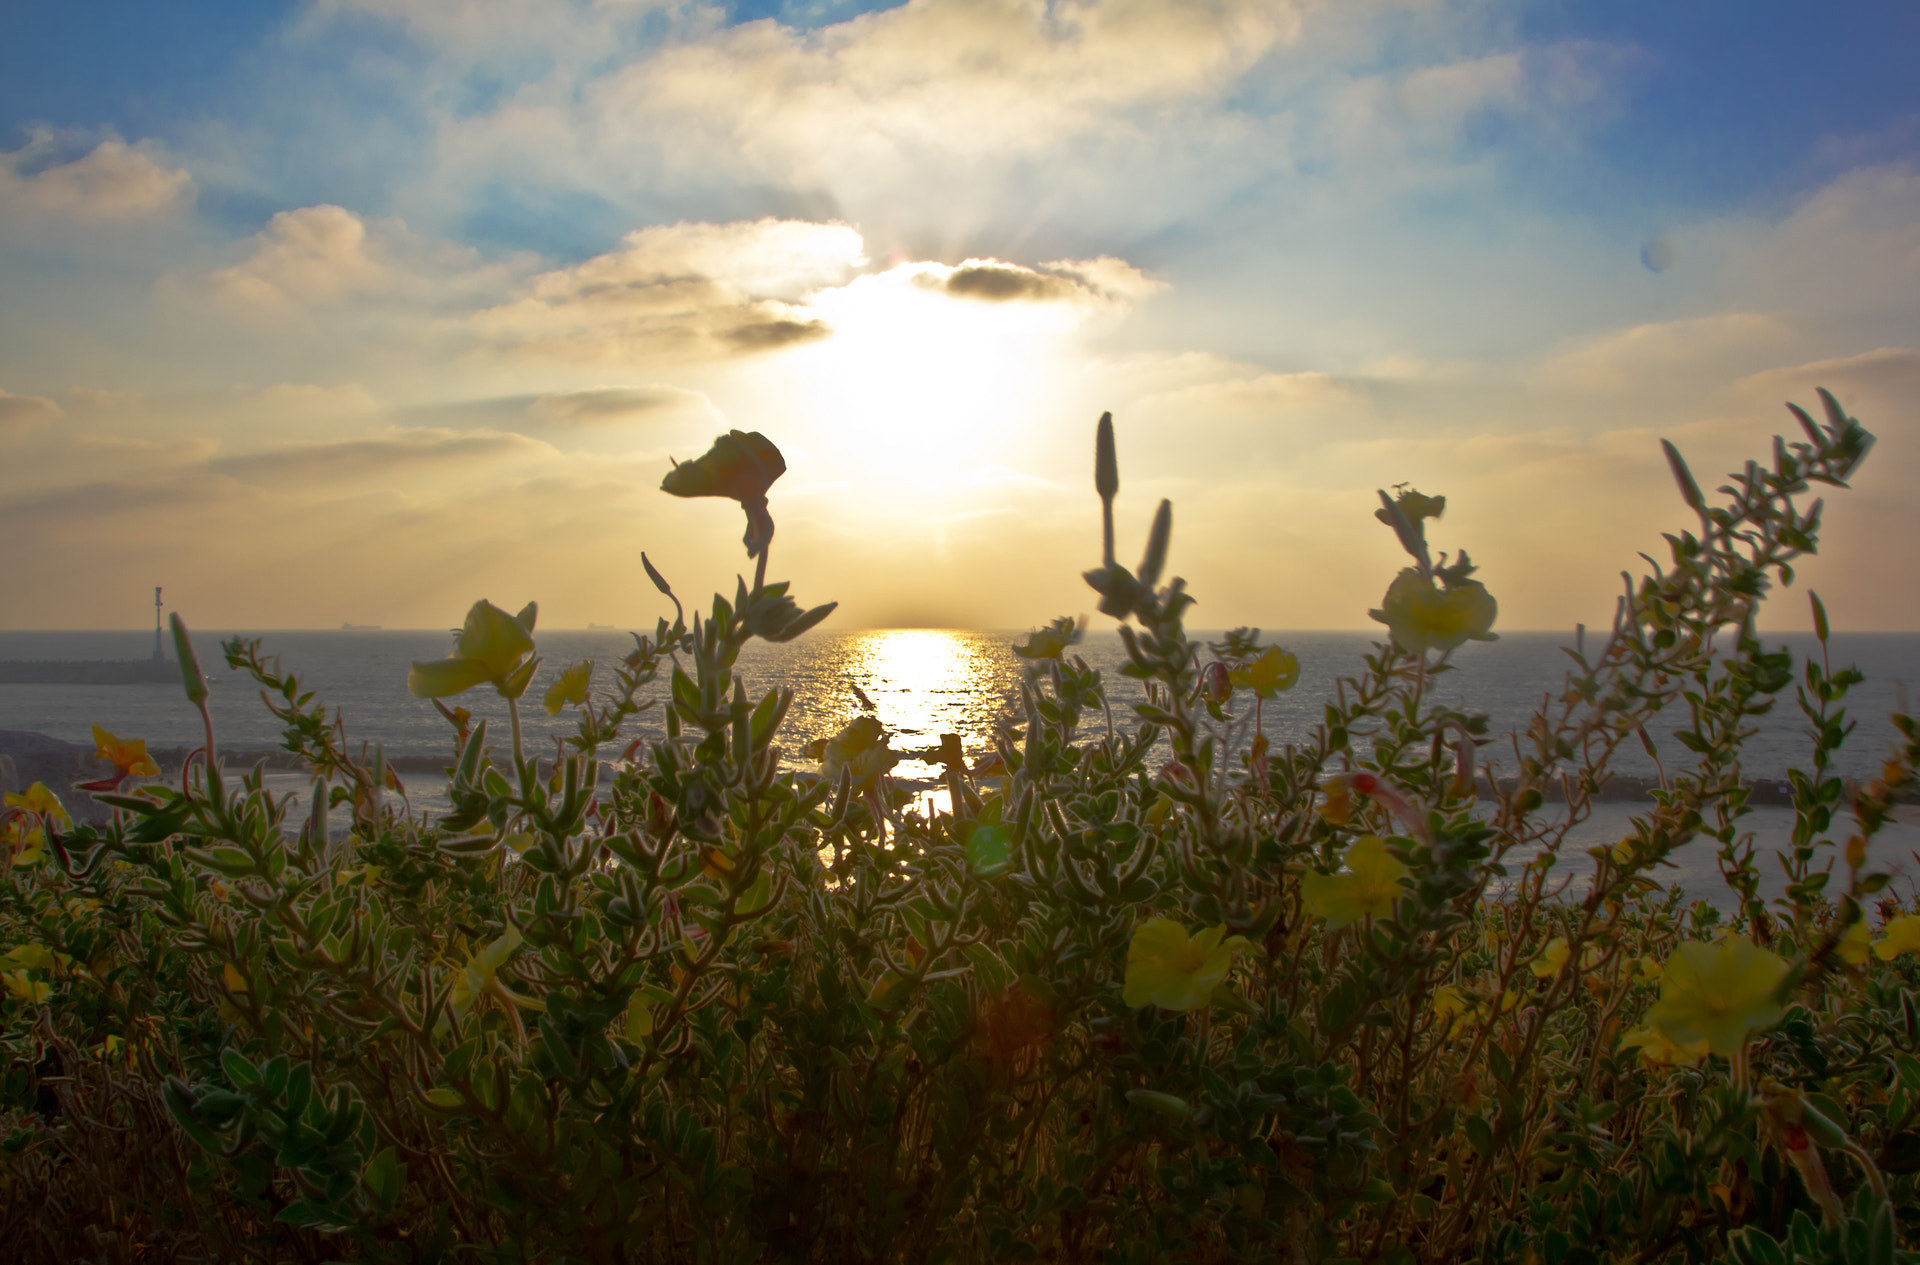 Photograph flowers and a sunset by Evgeni (Евгений) Radko (Редько) on 500px